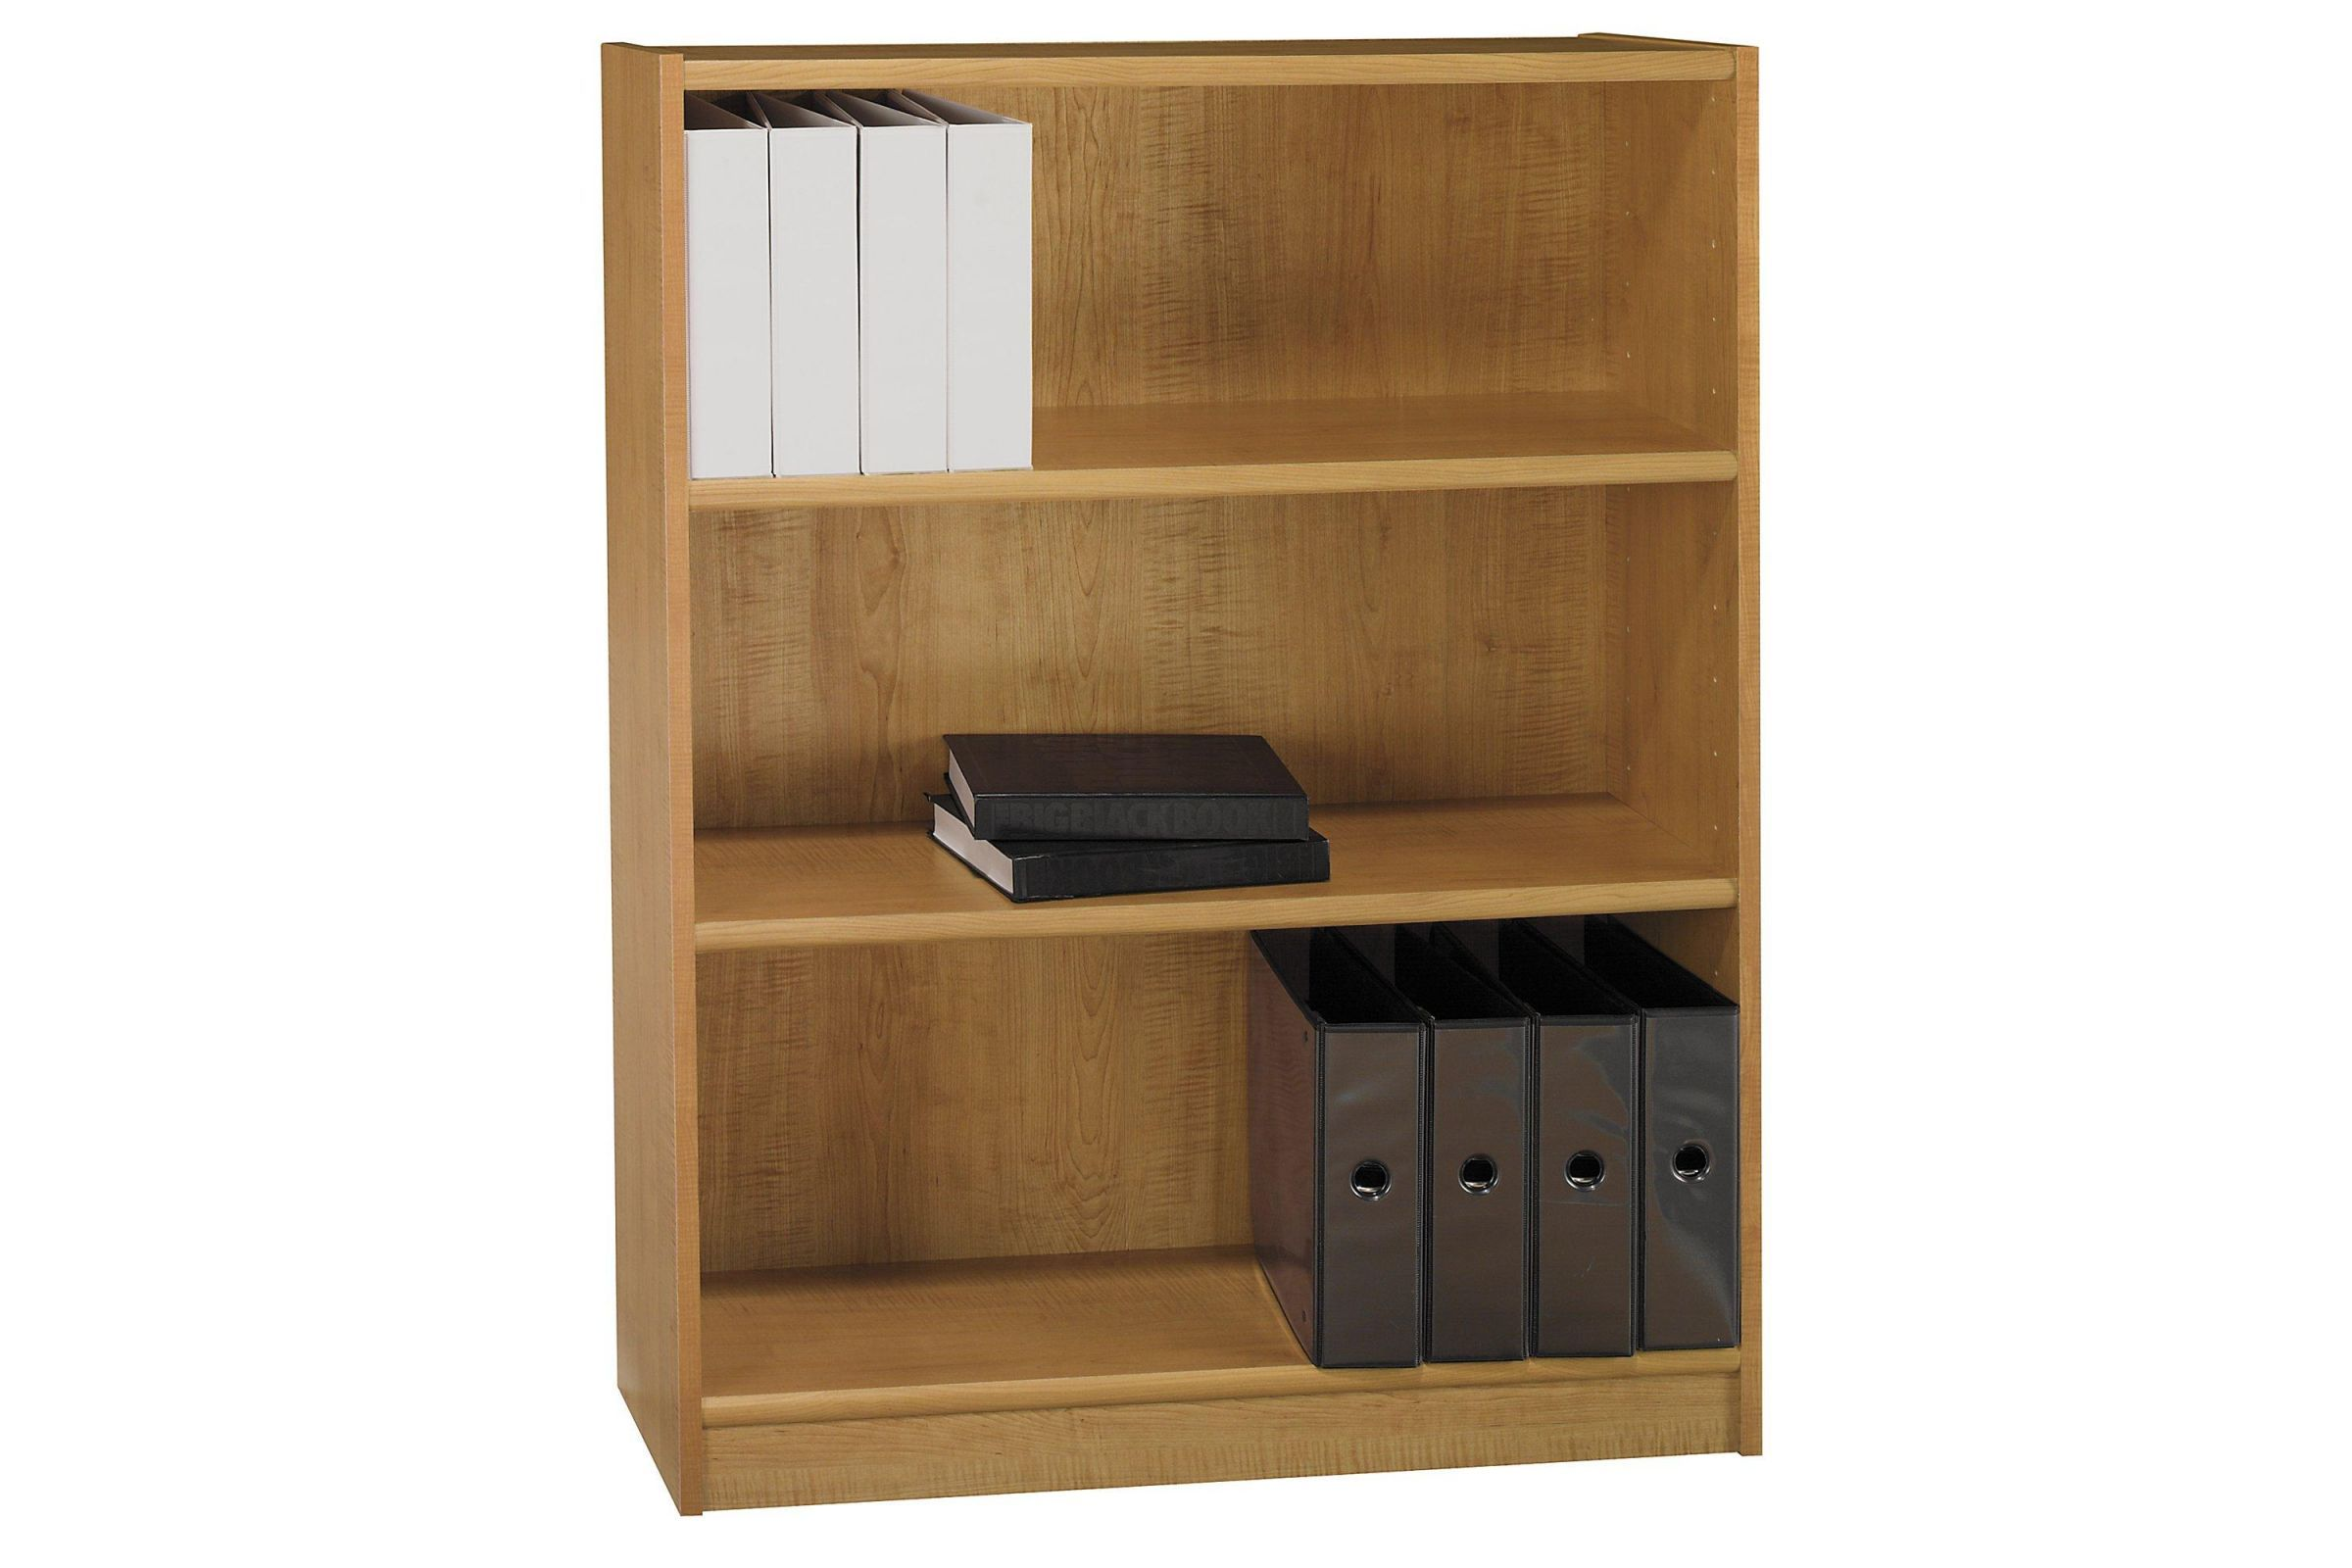 Universal 3 Shelf Bookcase In Snow Maple By Bush In 2019 3 Shelf Bookcase Shelves Bookcase